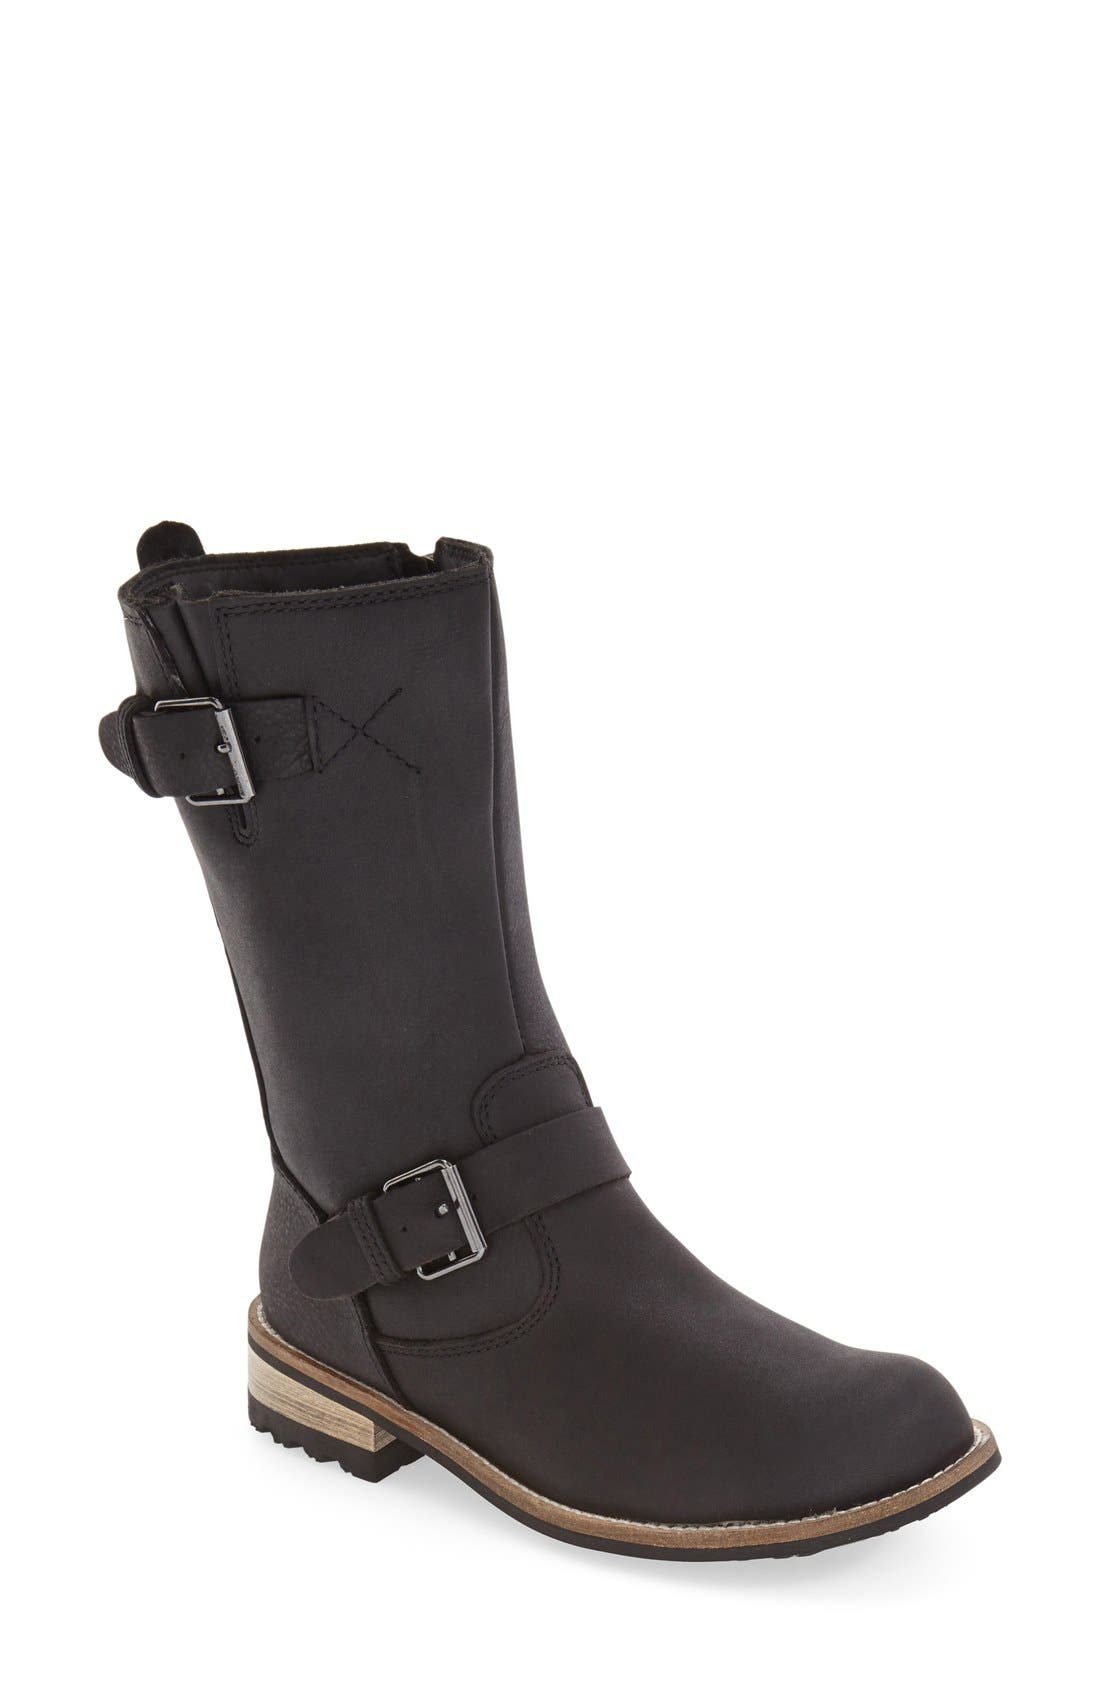 Lastest Kodiak Elie Leather Snow Boots (For Women) - Save 68%